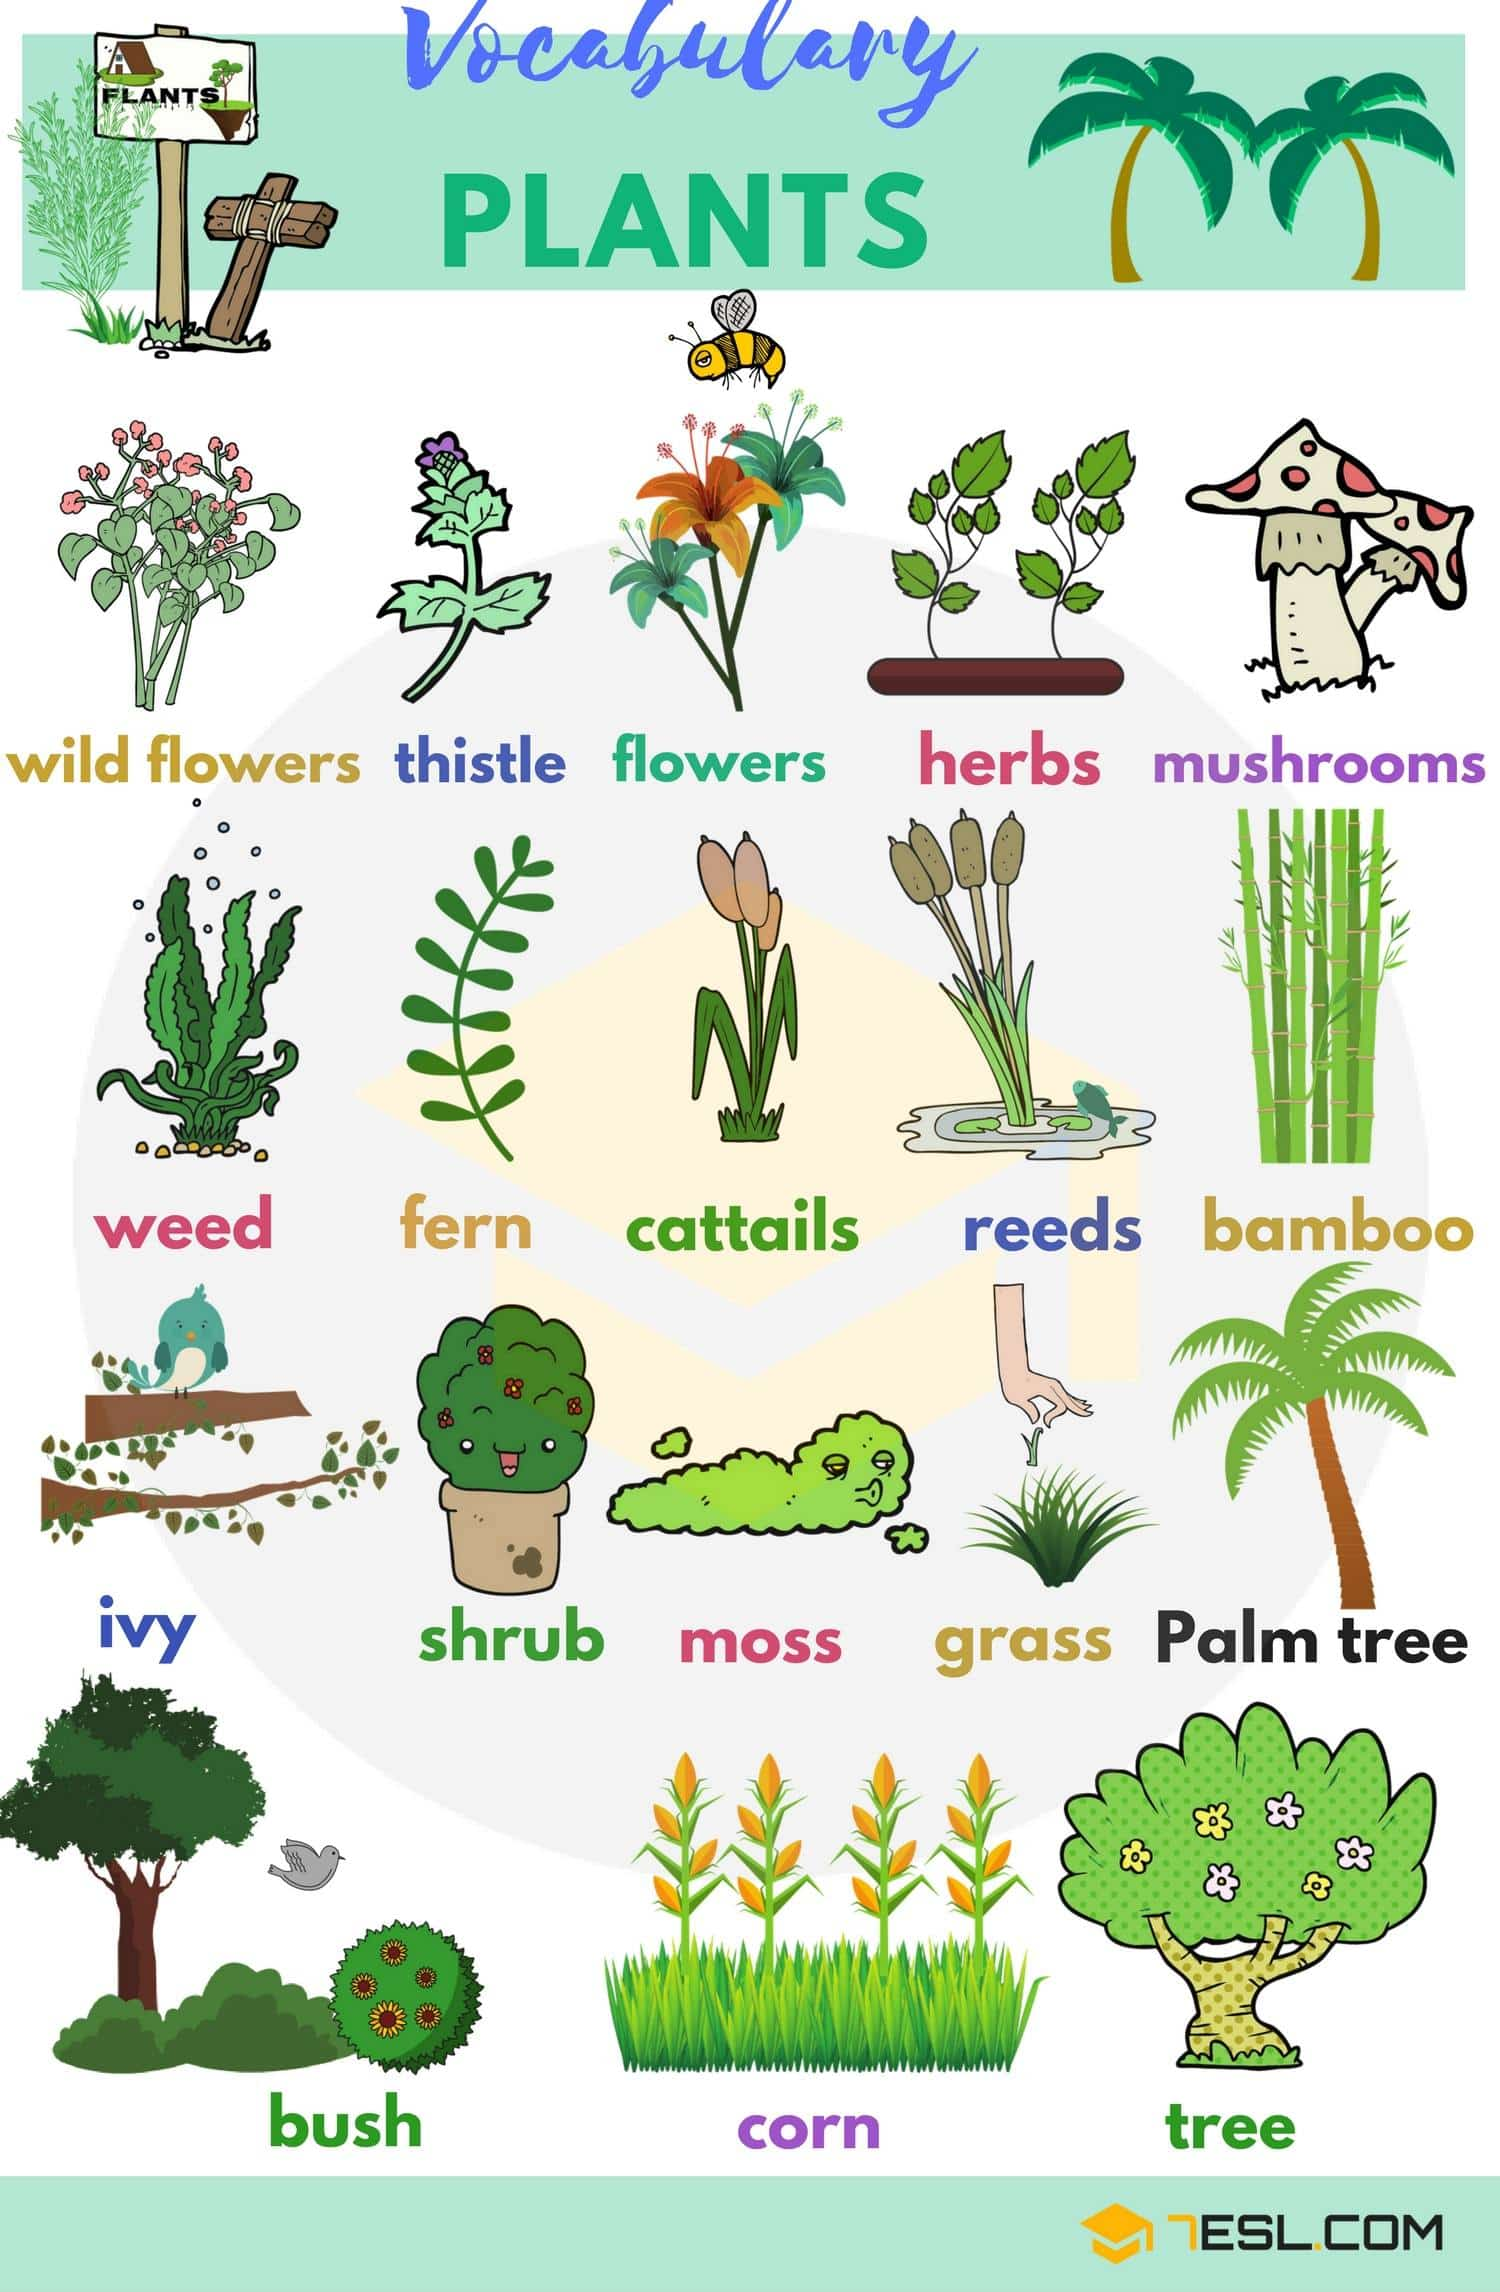 Plants Vocabulary